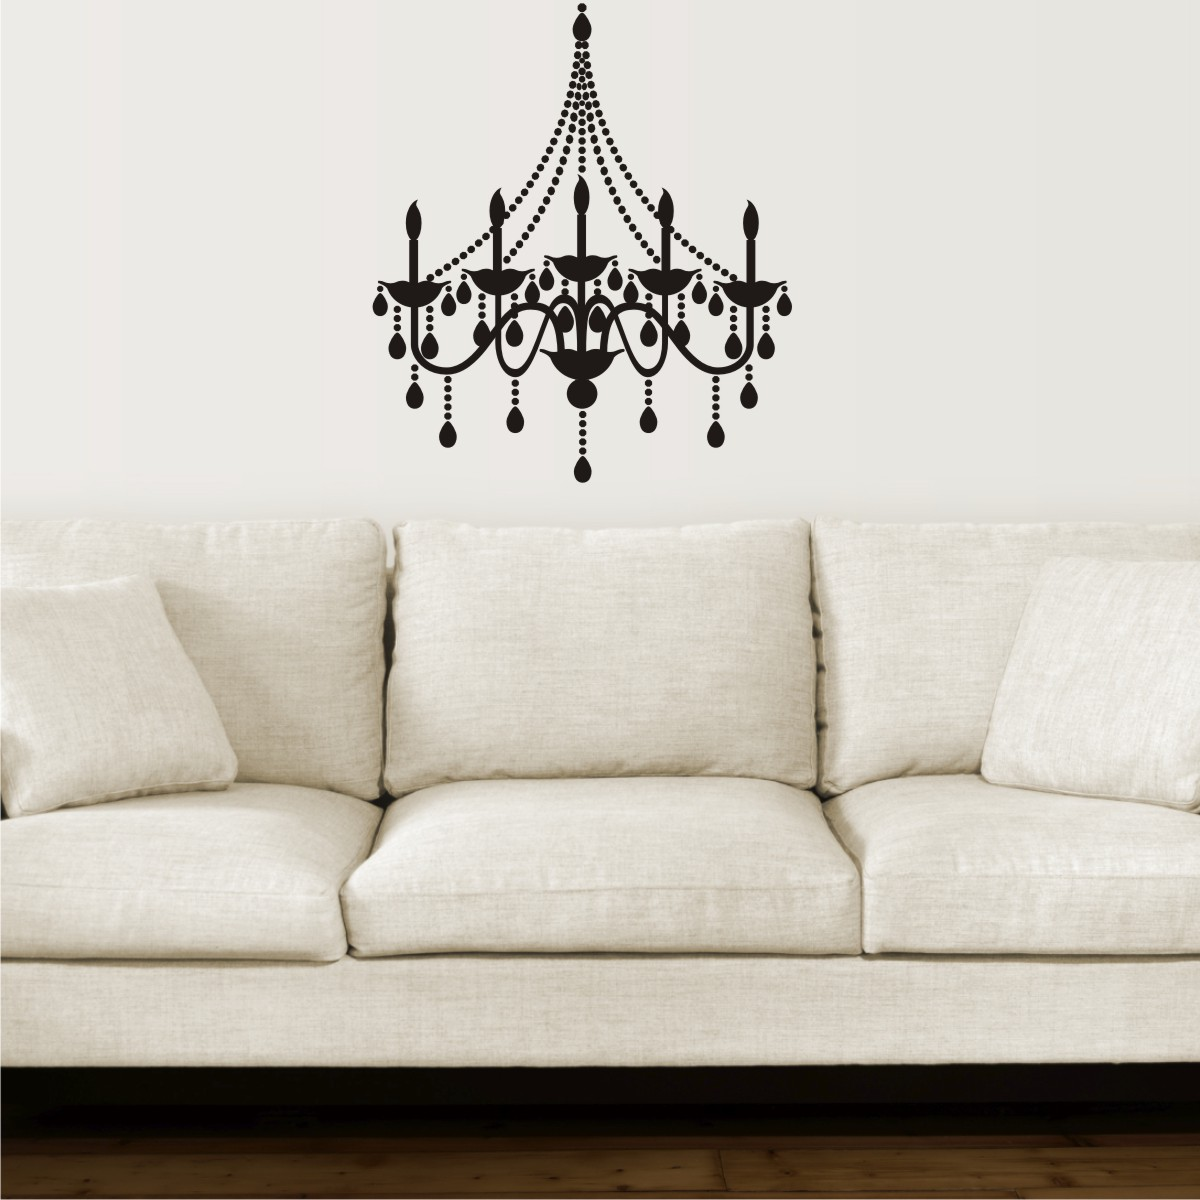 Elegant Chandelier Entryway Dining Living Room Wall Art Decal